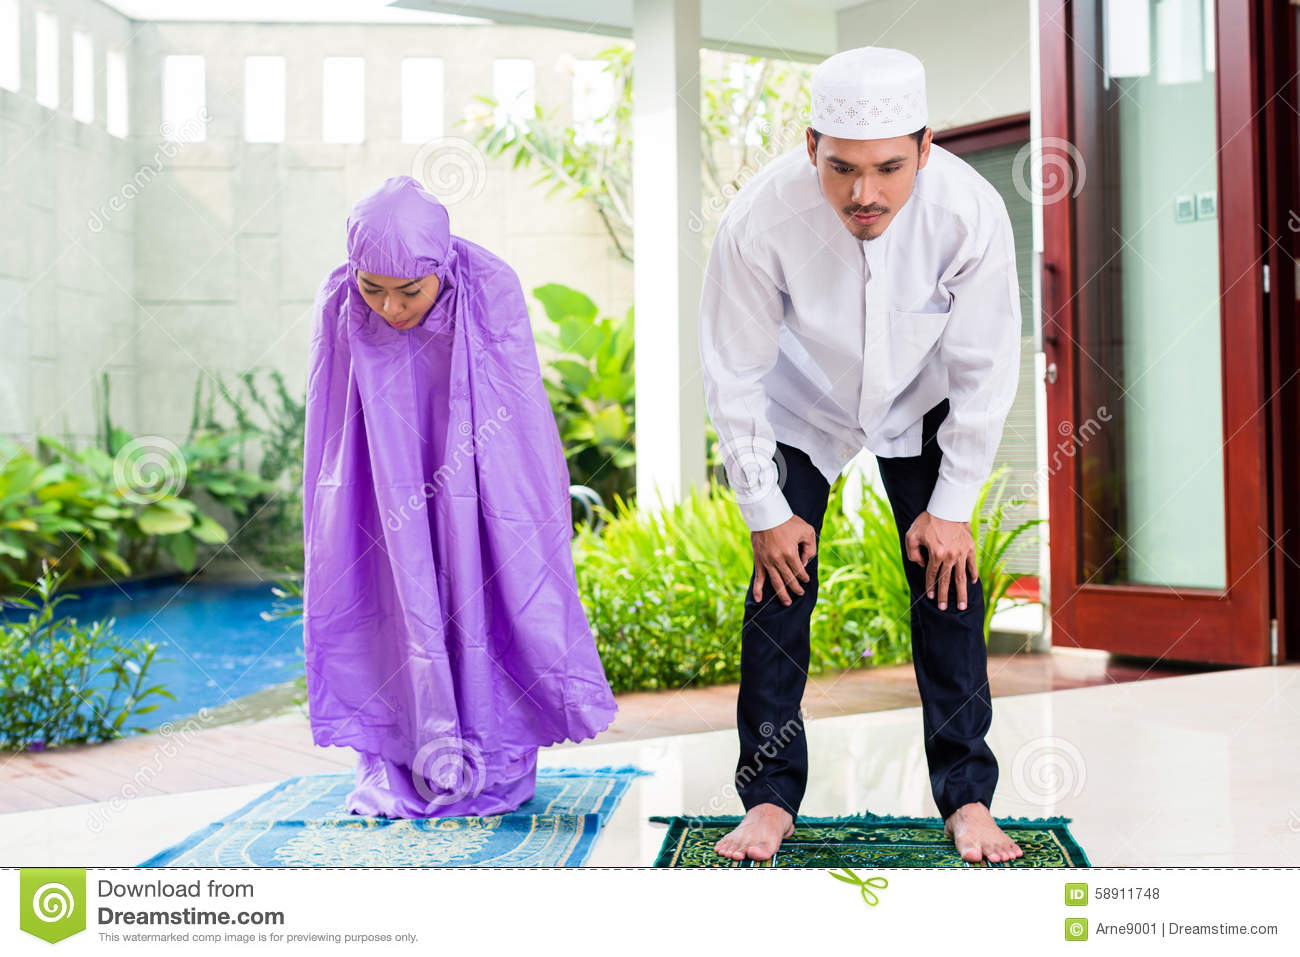 asian guy dating muslim girl Thousands of successful british asian dating matches muslim dating and muslim matrimonial sites have become widely accepted as ways of meeting that special.